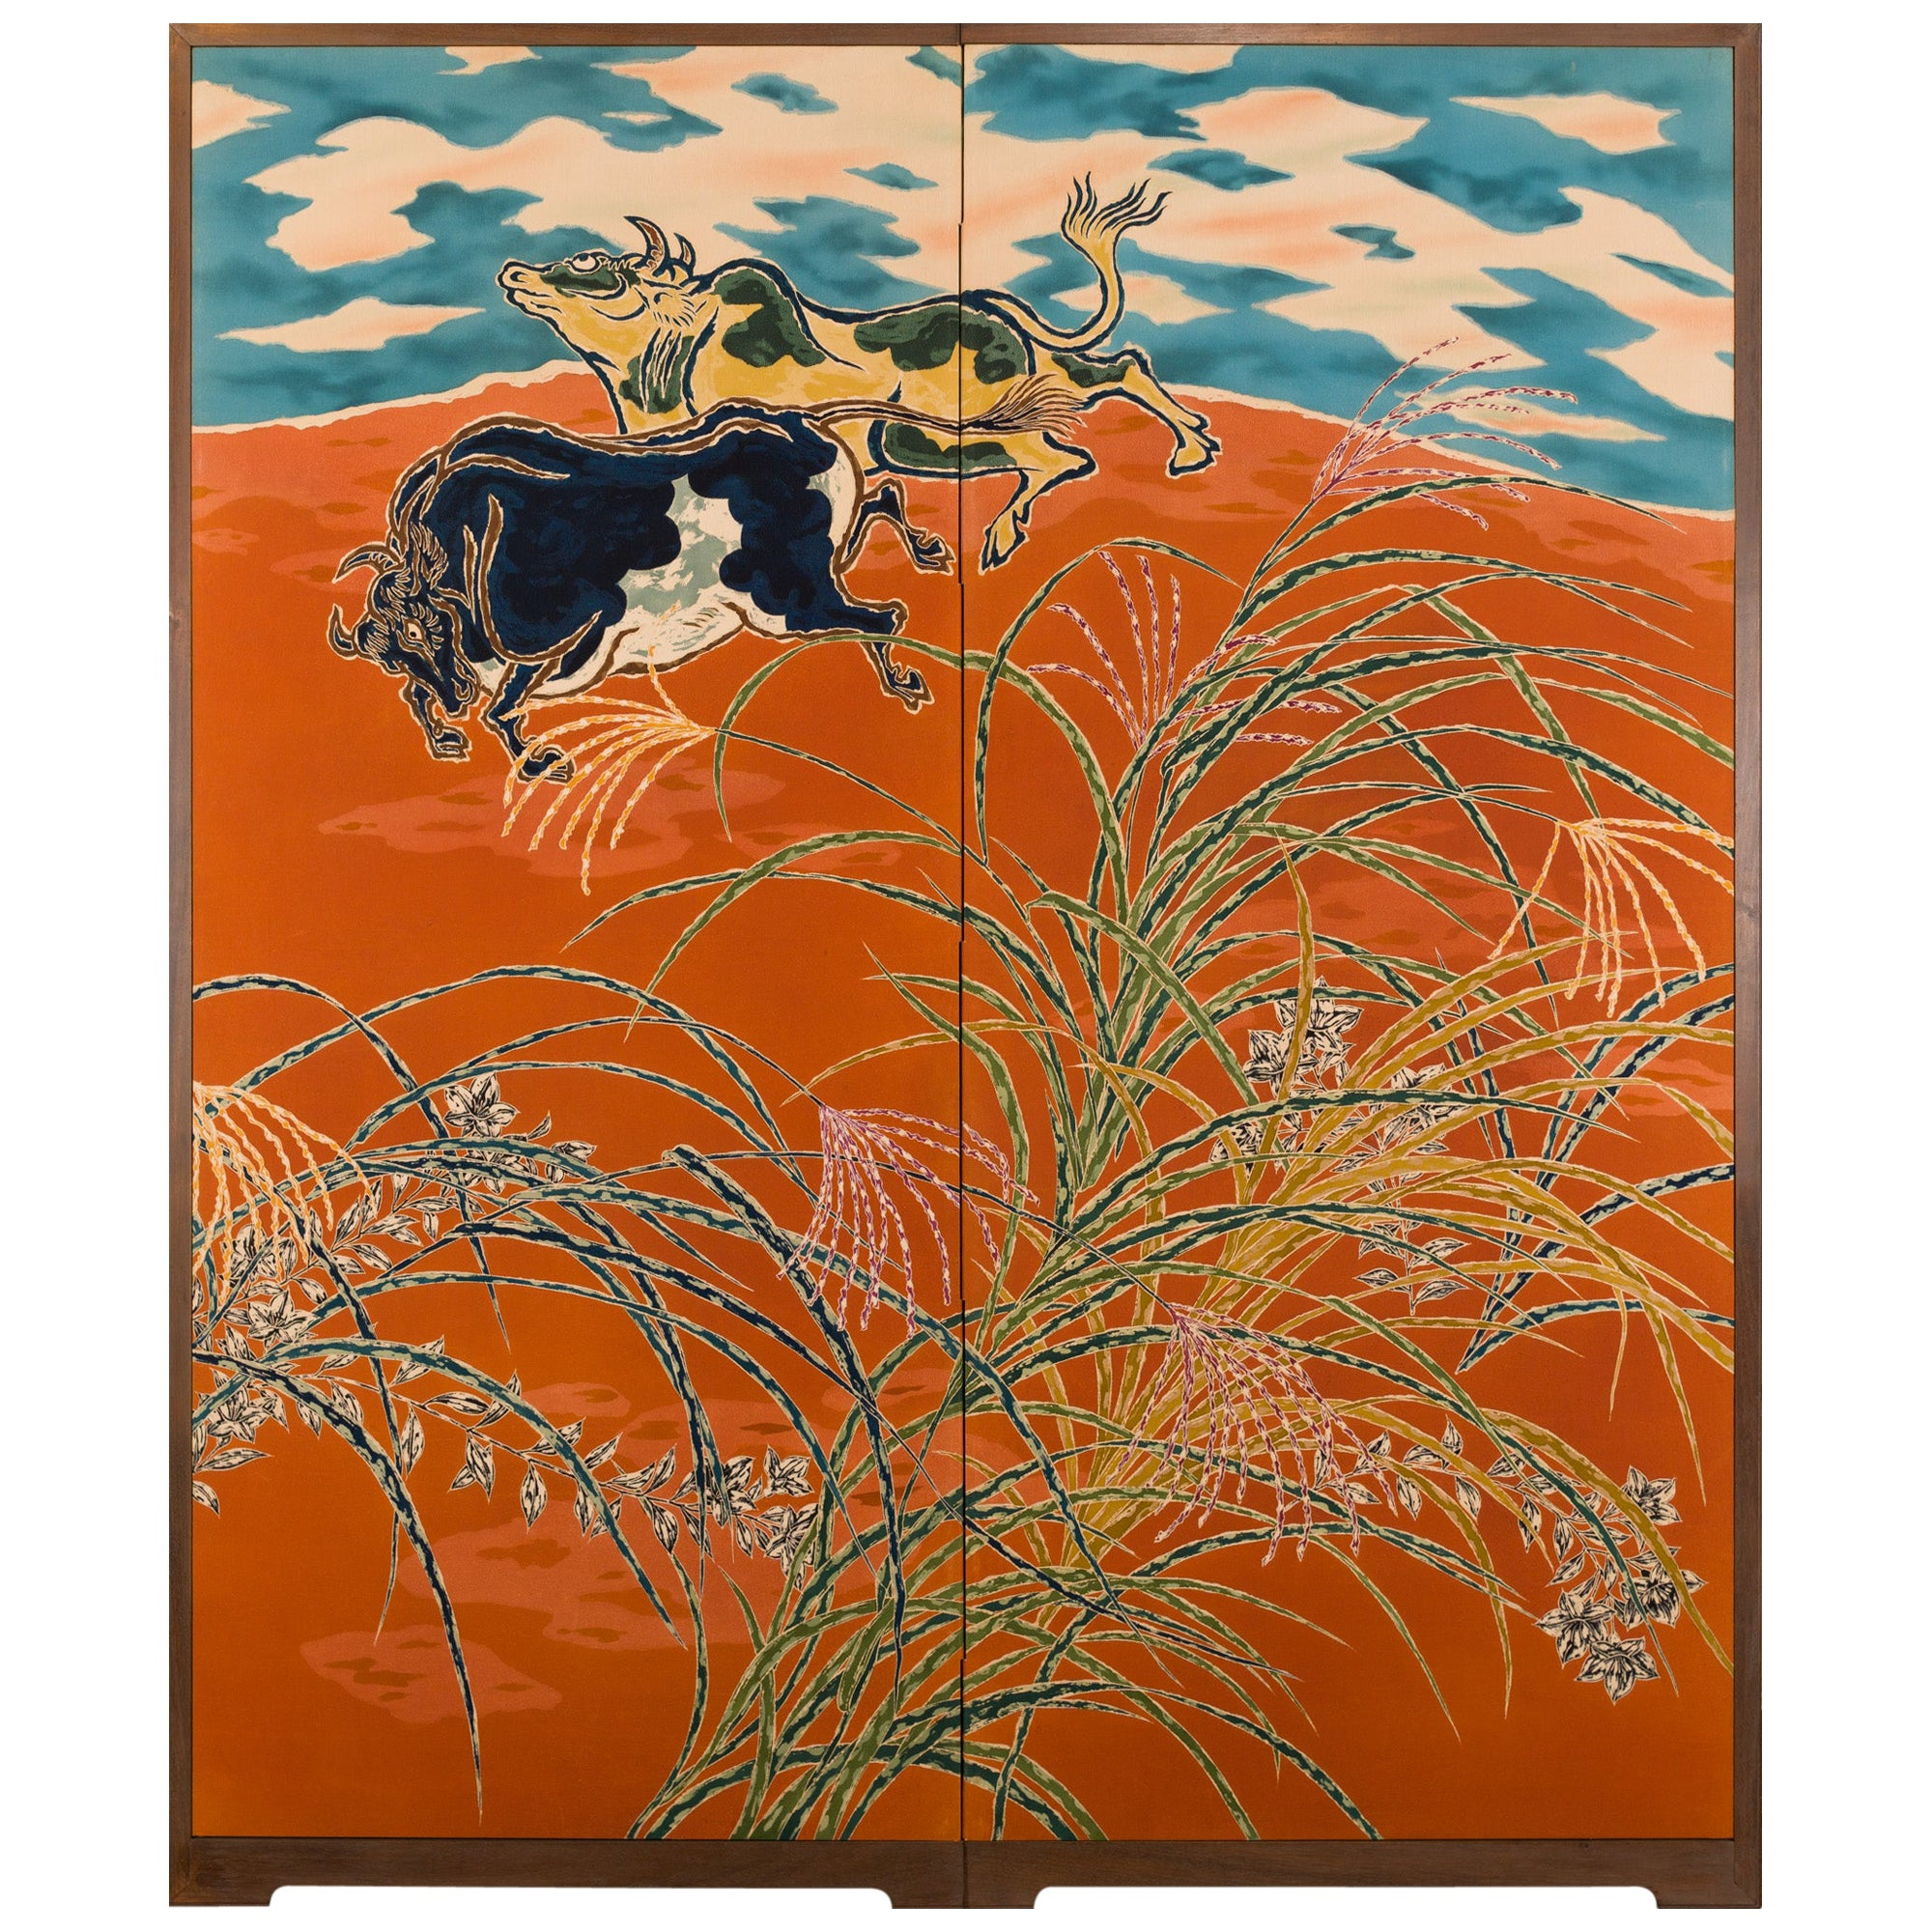 Japanese Two Panel Screen Romping Steers in a Pasture of Wild Grasses